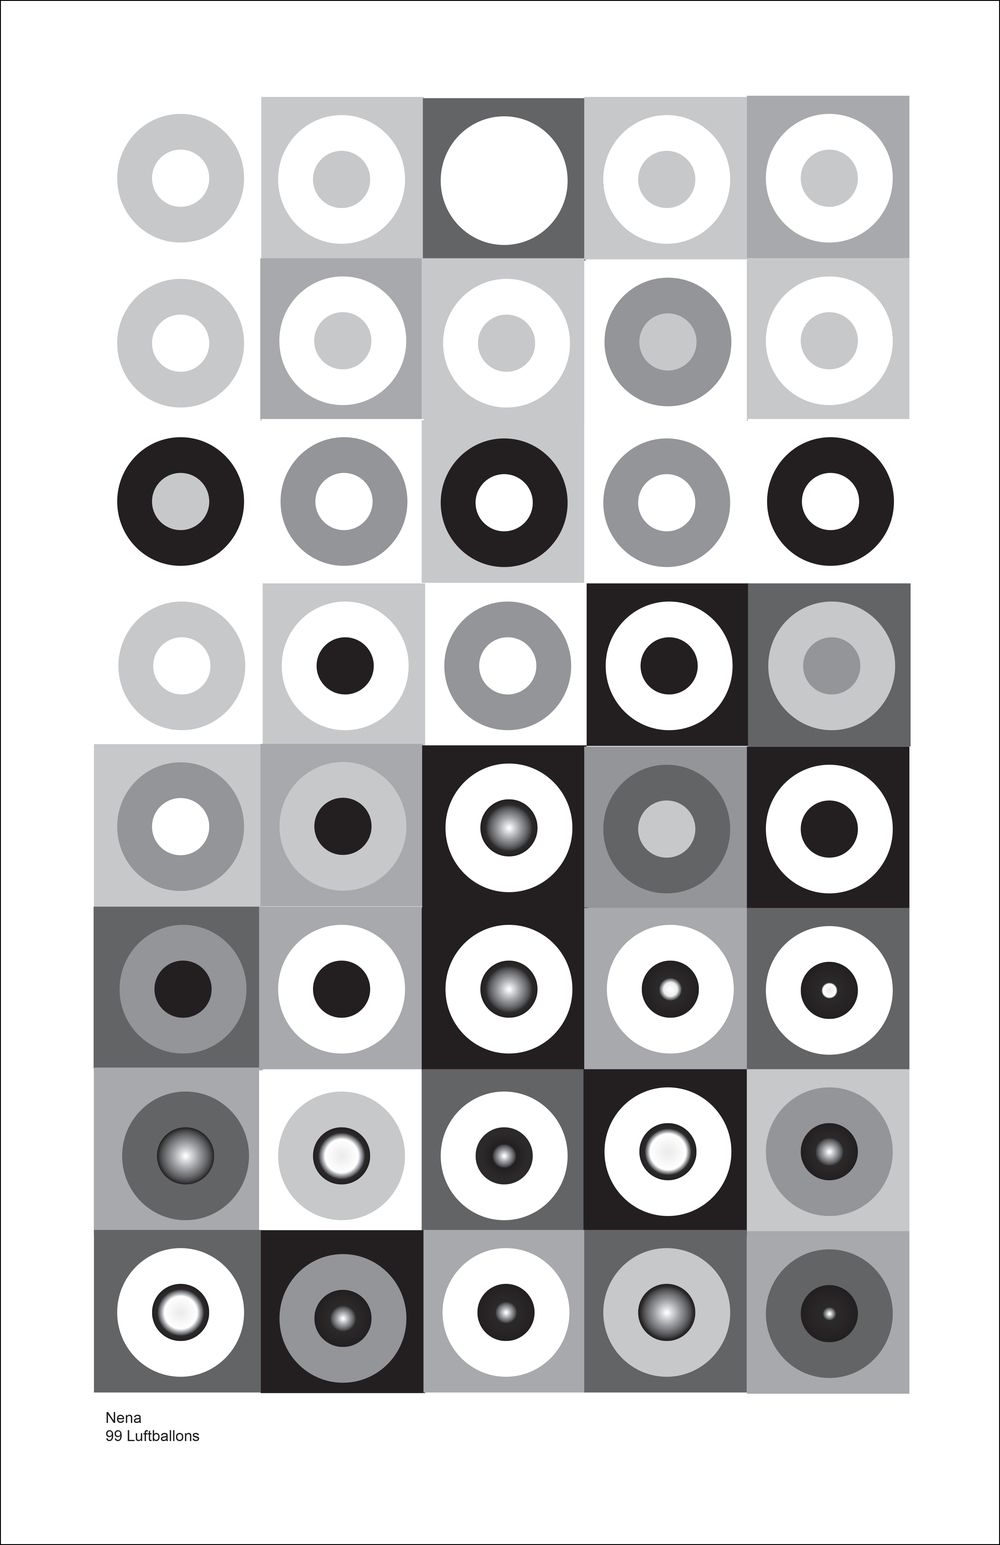 ART215 Illustrator/InDesign - Interpreting Music as Geometric Patterns: Jeremiah Johnson